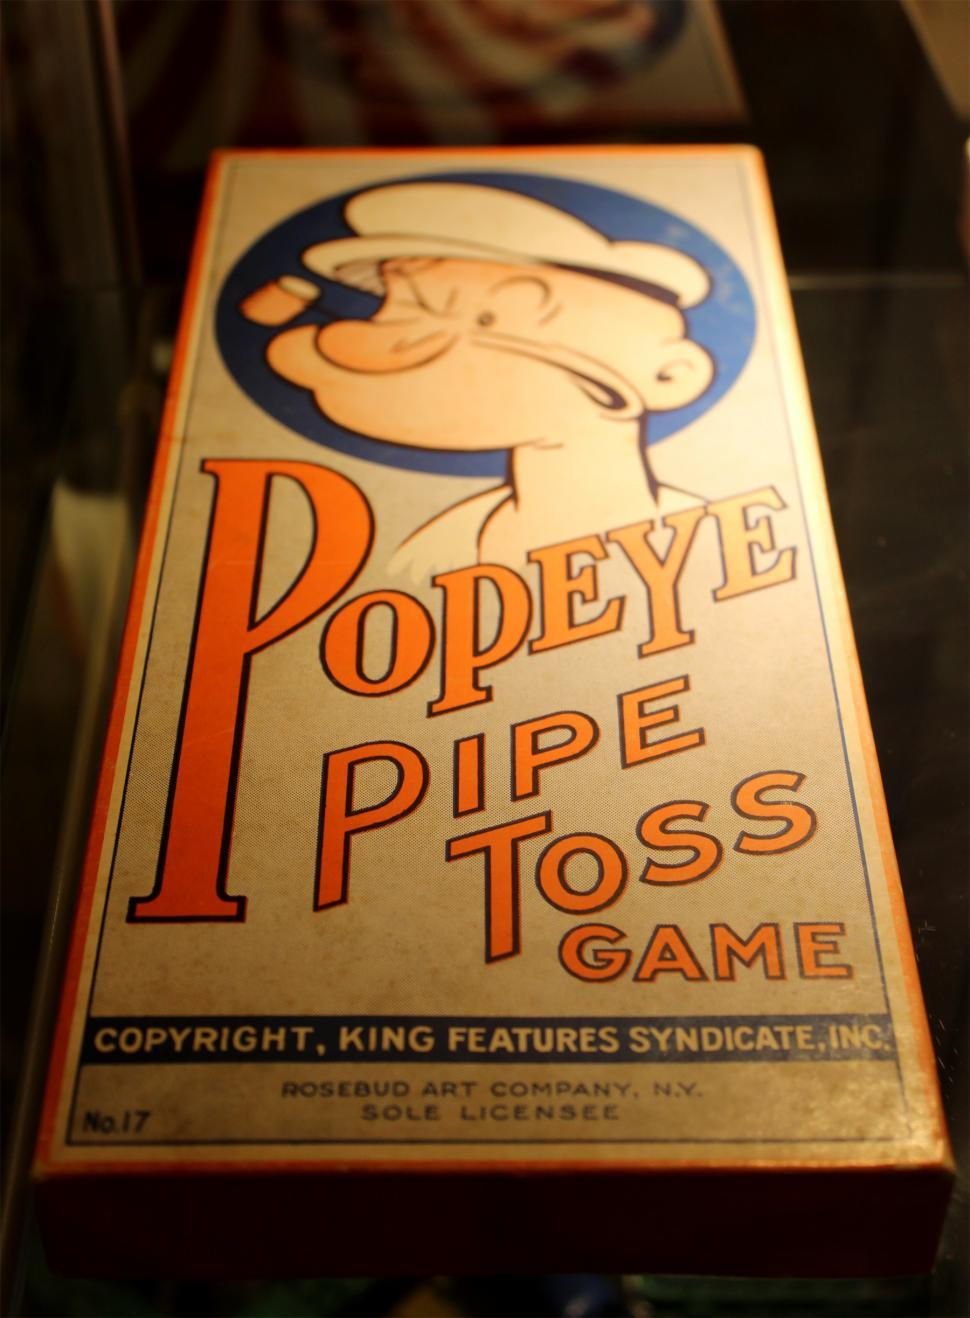 Download Free Stock HD Photo of Vintage Toys - Popeye Pipe Toss Game Online